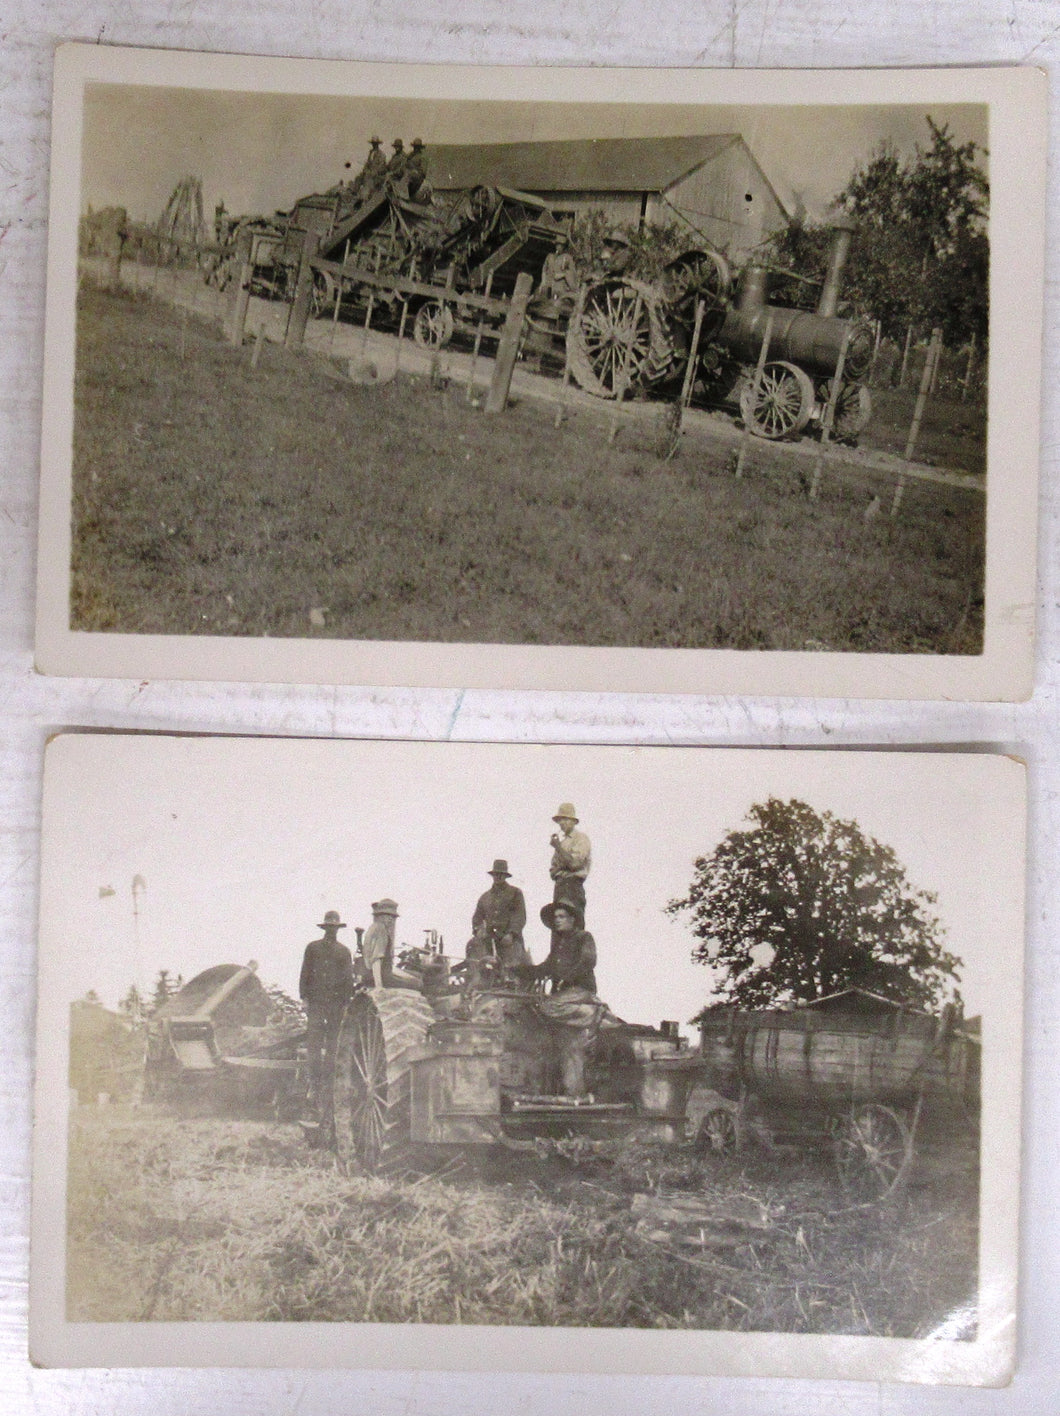 Two photo postcards of steam tractors in Northern Ontario